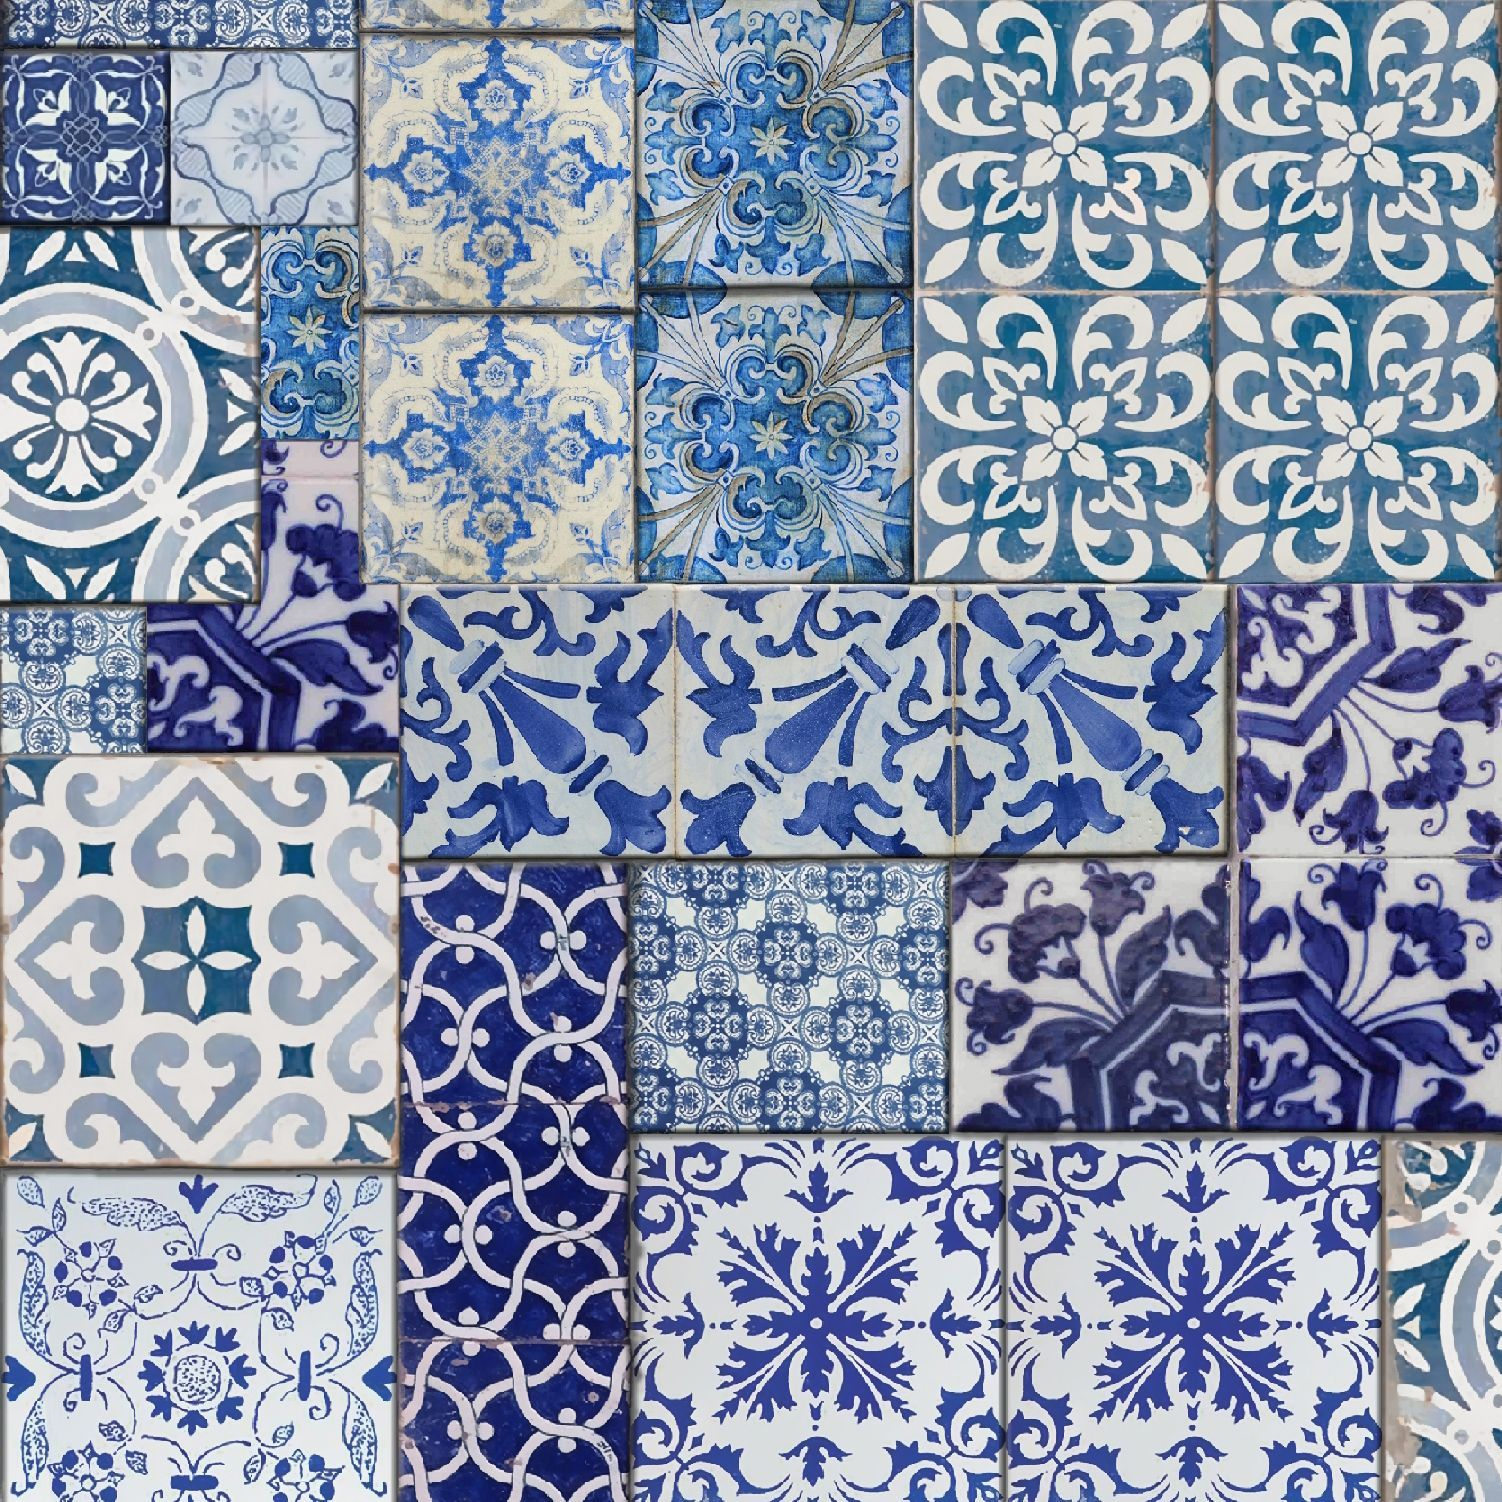 Muriva Blue Moroccan Tiles Wallpaper | Pinterest | Häkeln